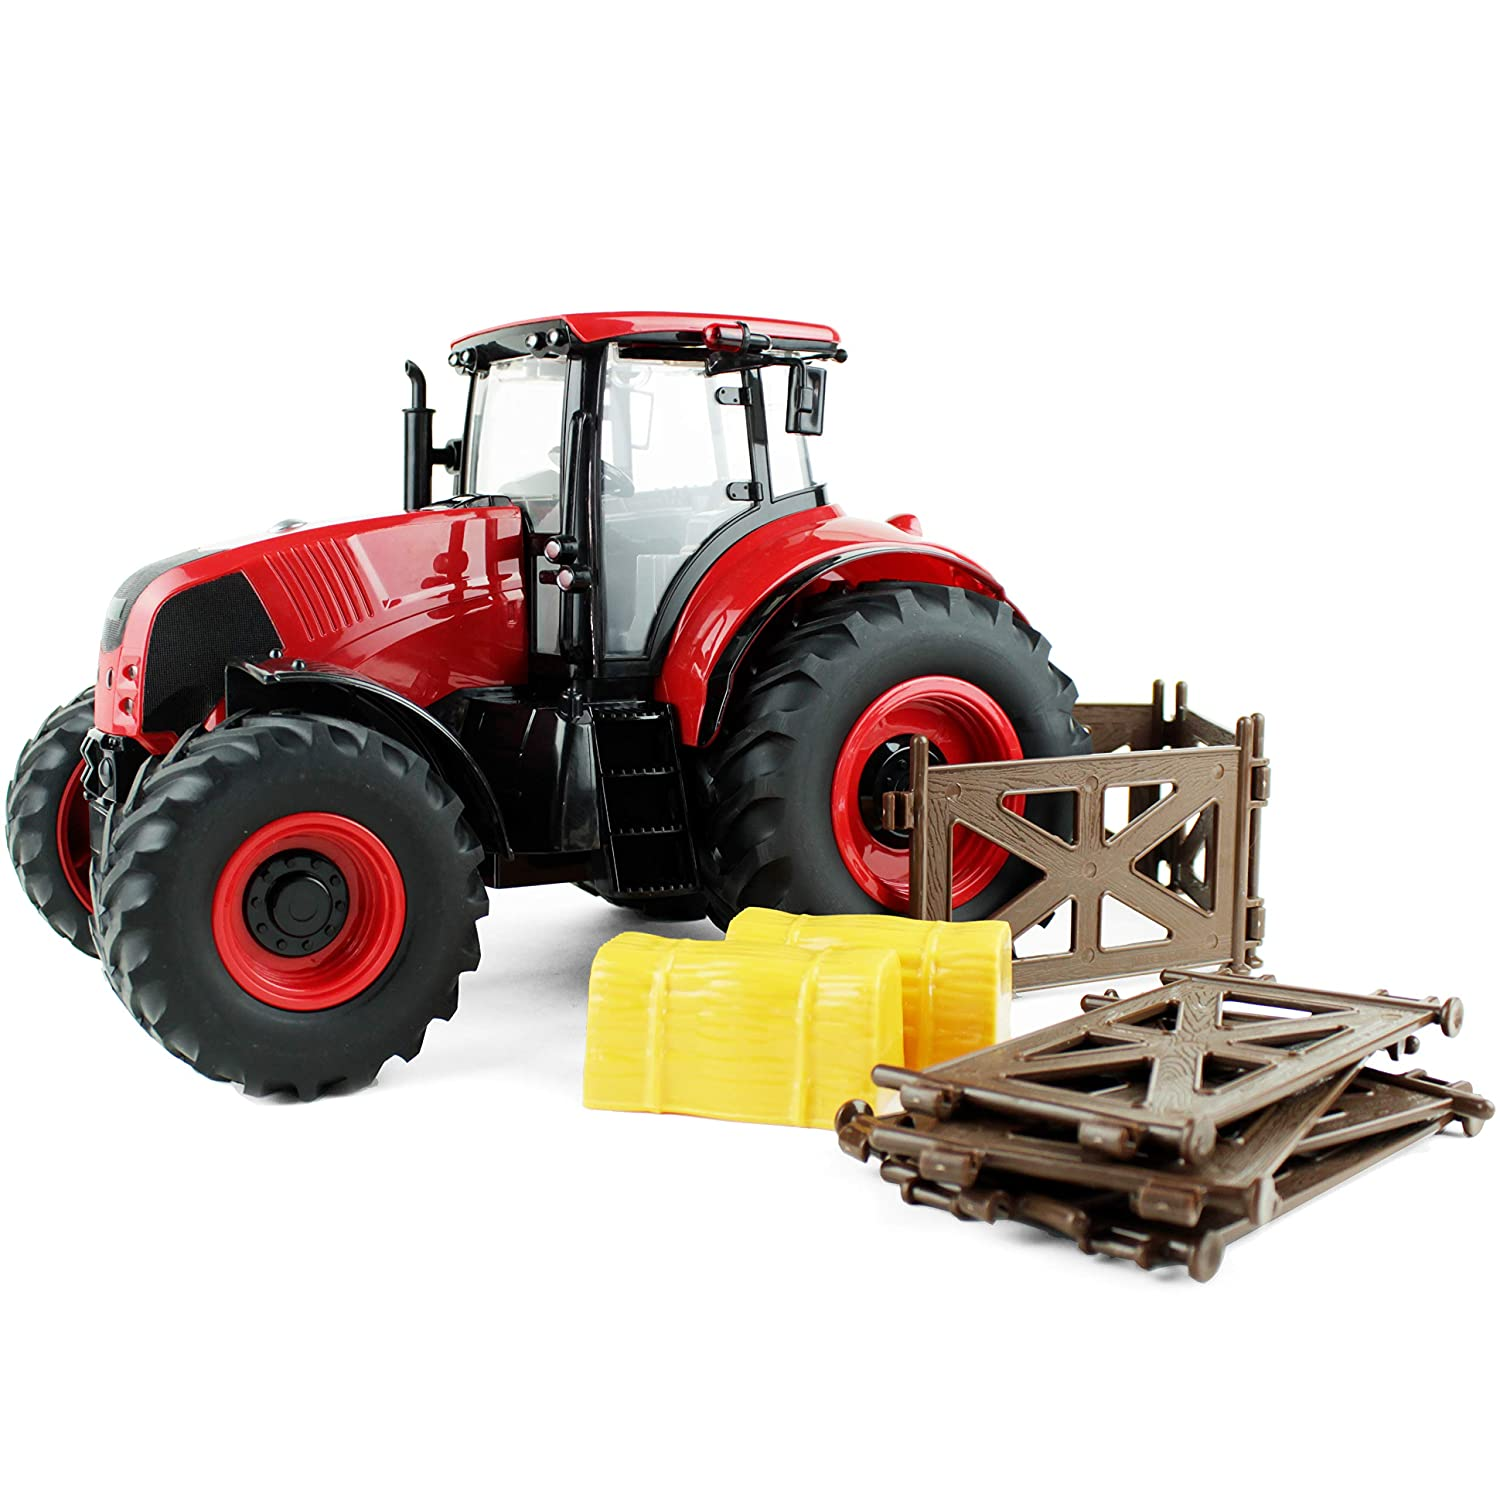 Boley Red Farm Tractor Toy - Farm Tractor Car with Hay Bales and Barn Gates - Lights Up and Makes Sounds